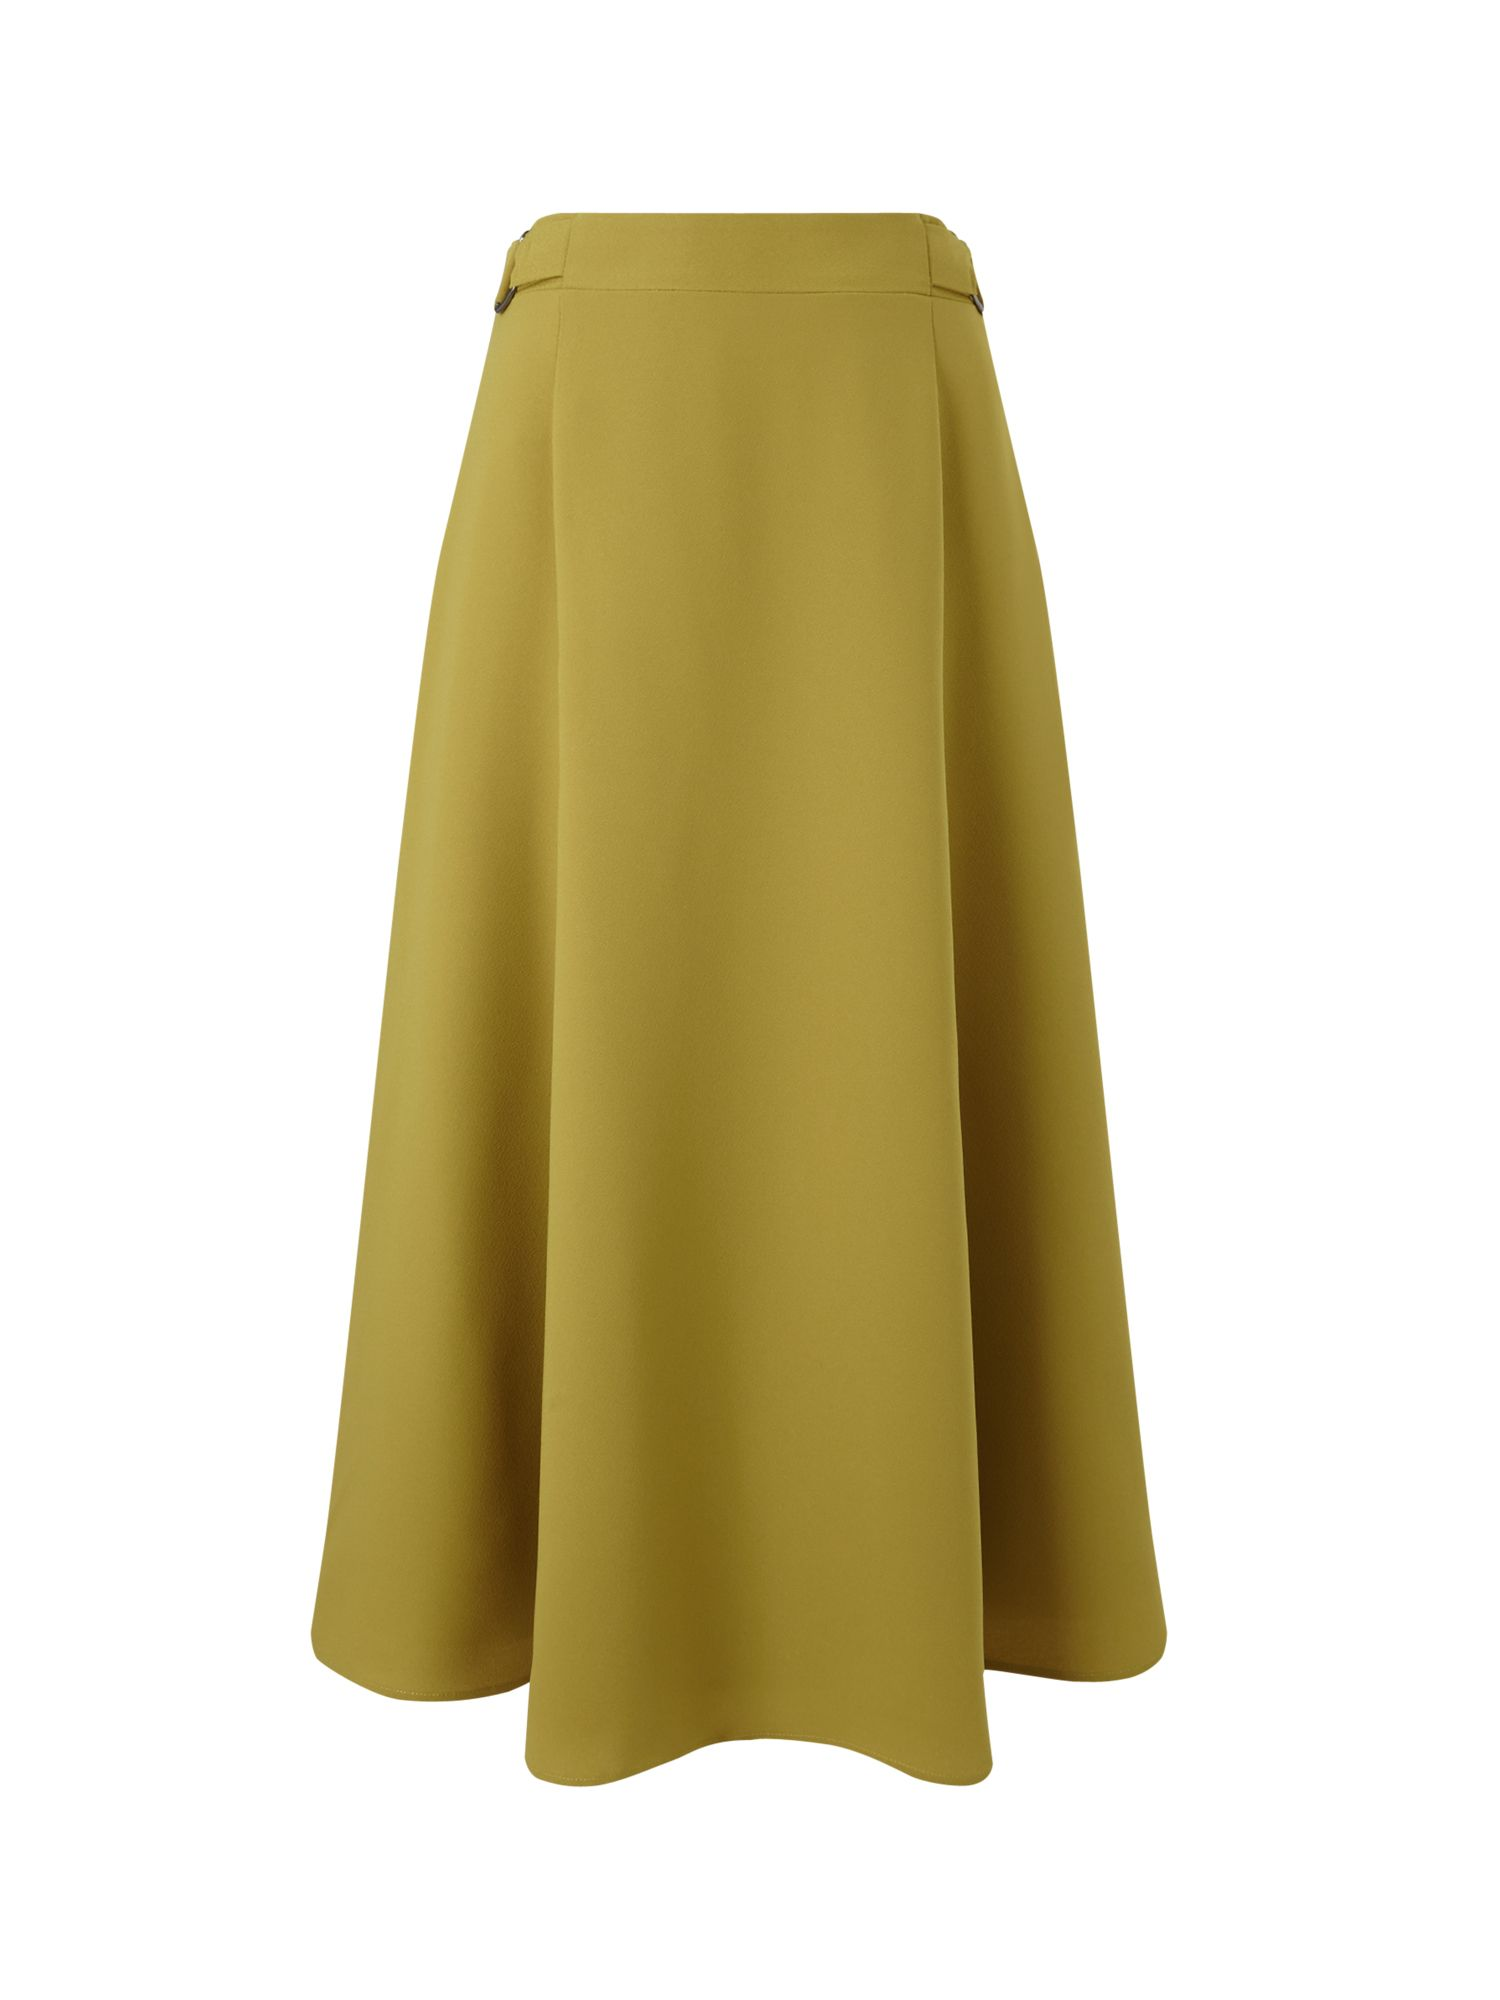 Eastex Crepe Detail Wrap Skirt, Green